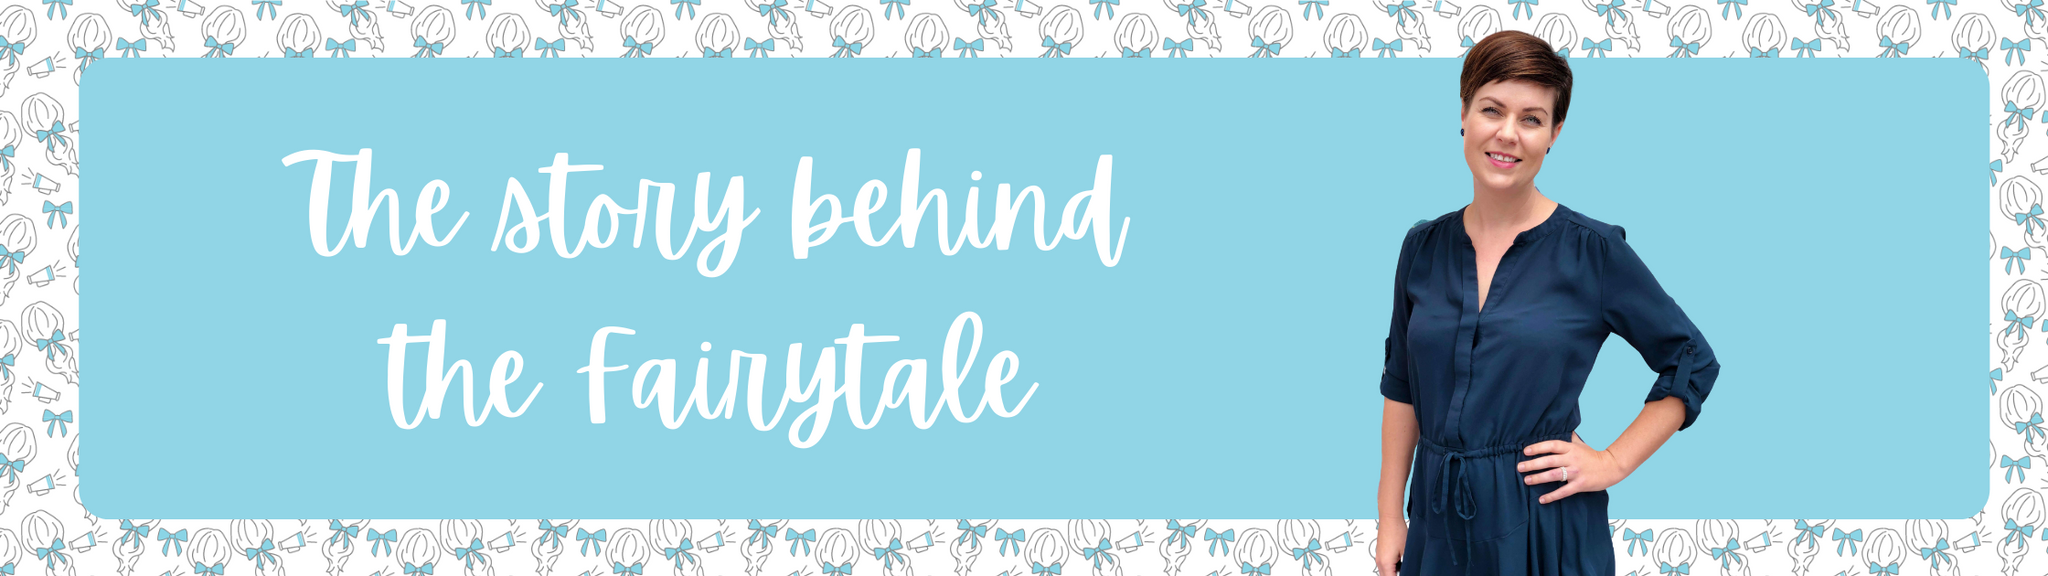 The story behind the fairytale - Nicola Hudson - Ponytails and Fairytales